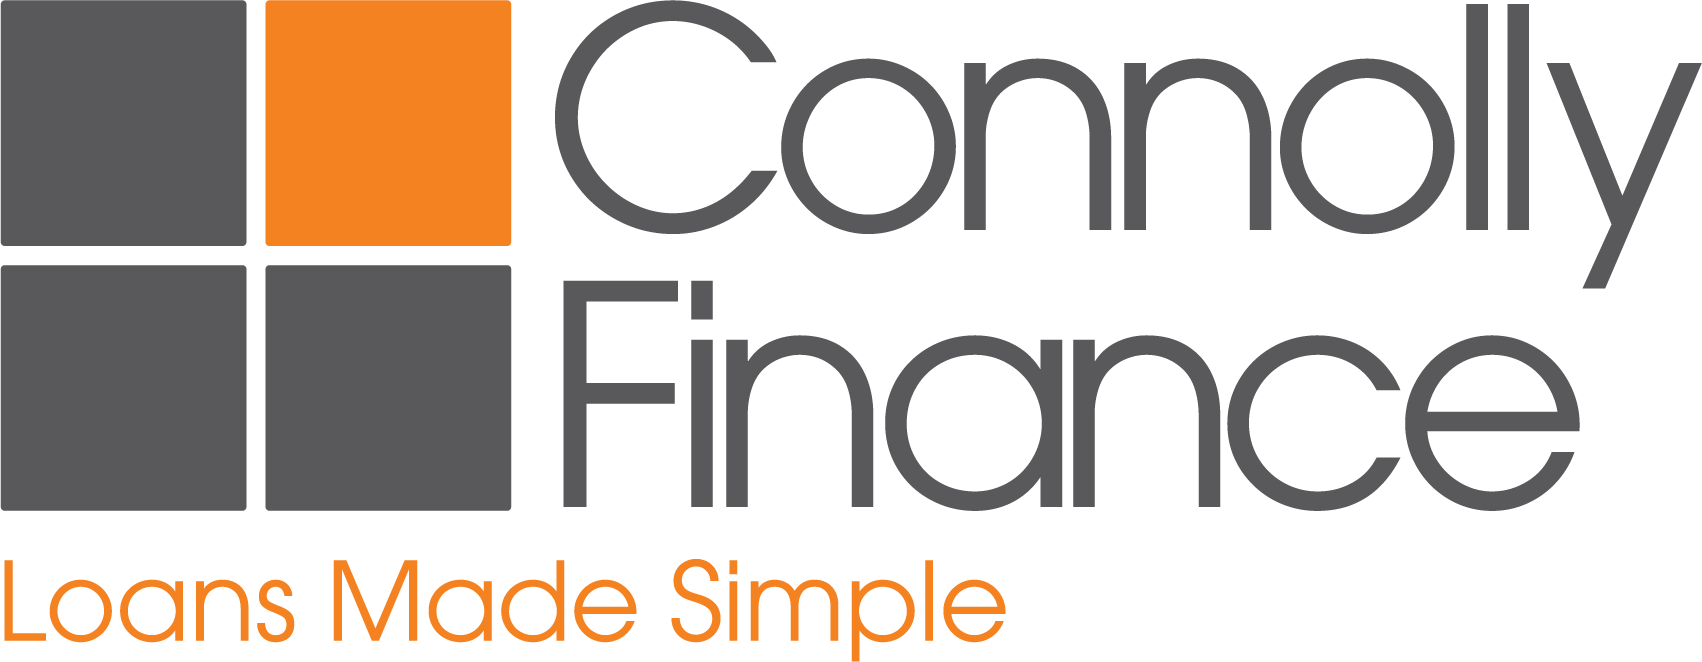 ConnollyFinance_Logo_600